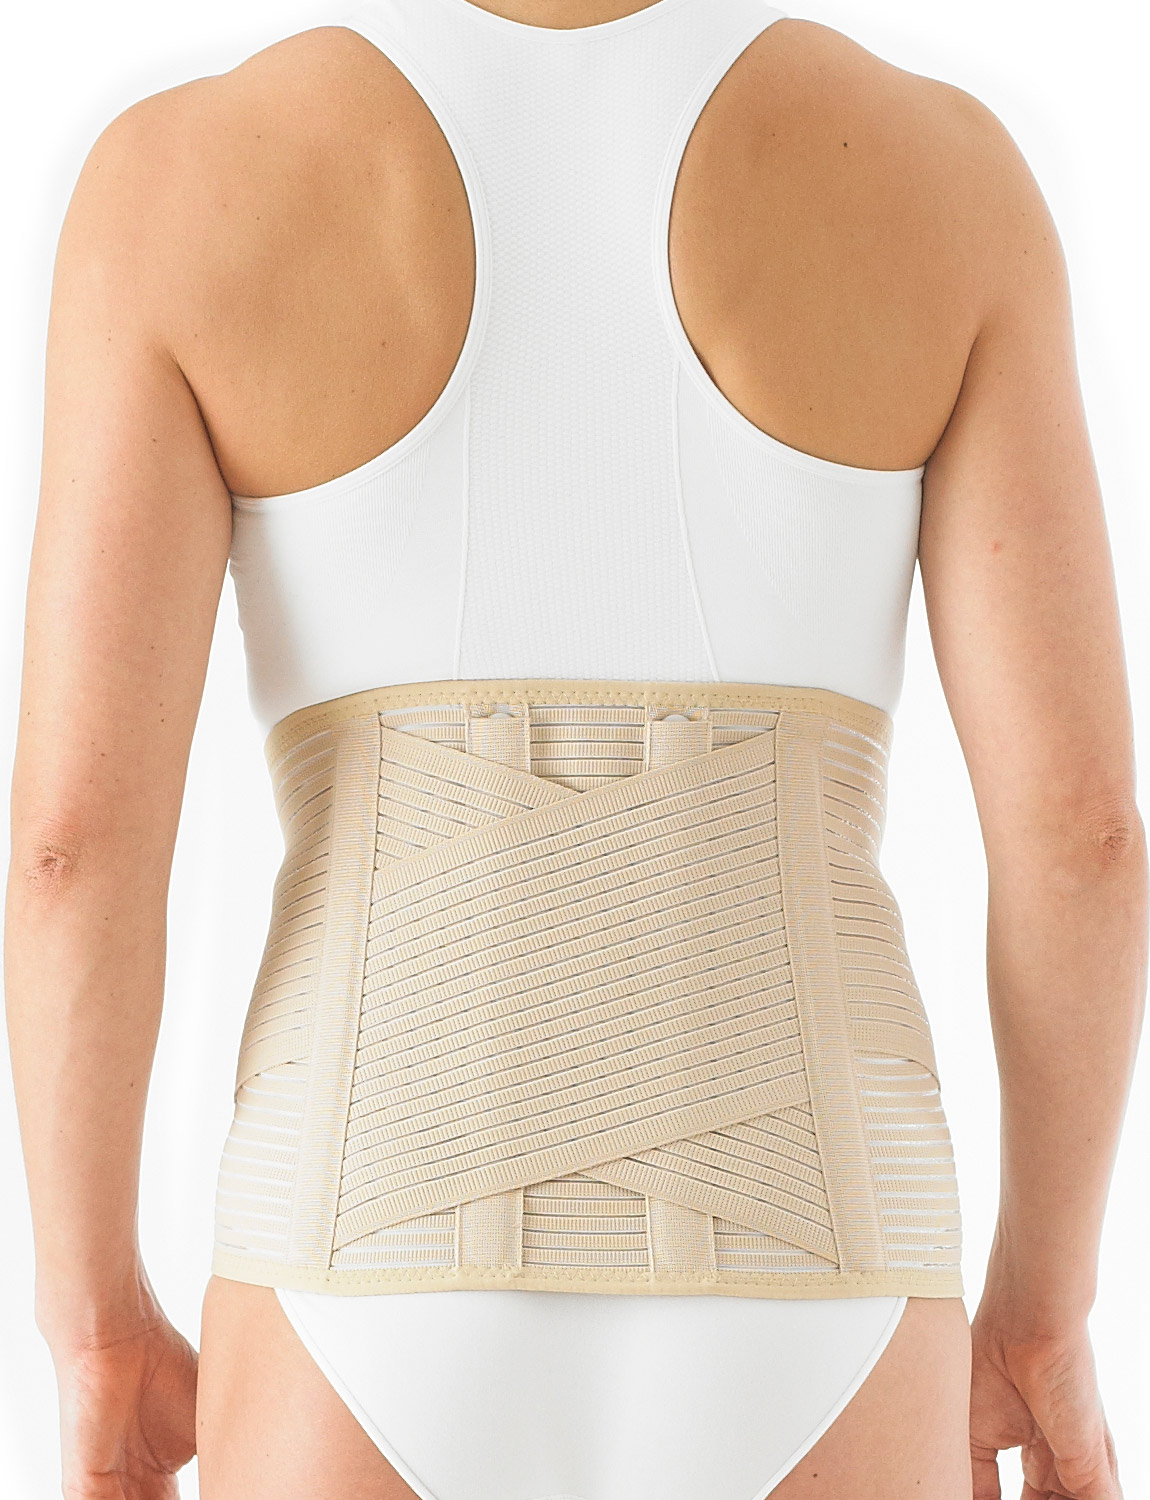 135 - LUMBOSTAD SUPPORT/BRACE  It has been designed to help reduce excessive and unwanted movements and so encourage healing of injured tendons, ligaments, muscles and lumbar discs by helping to manage over stretching.